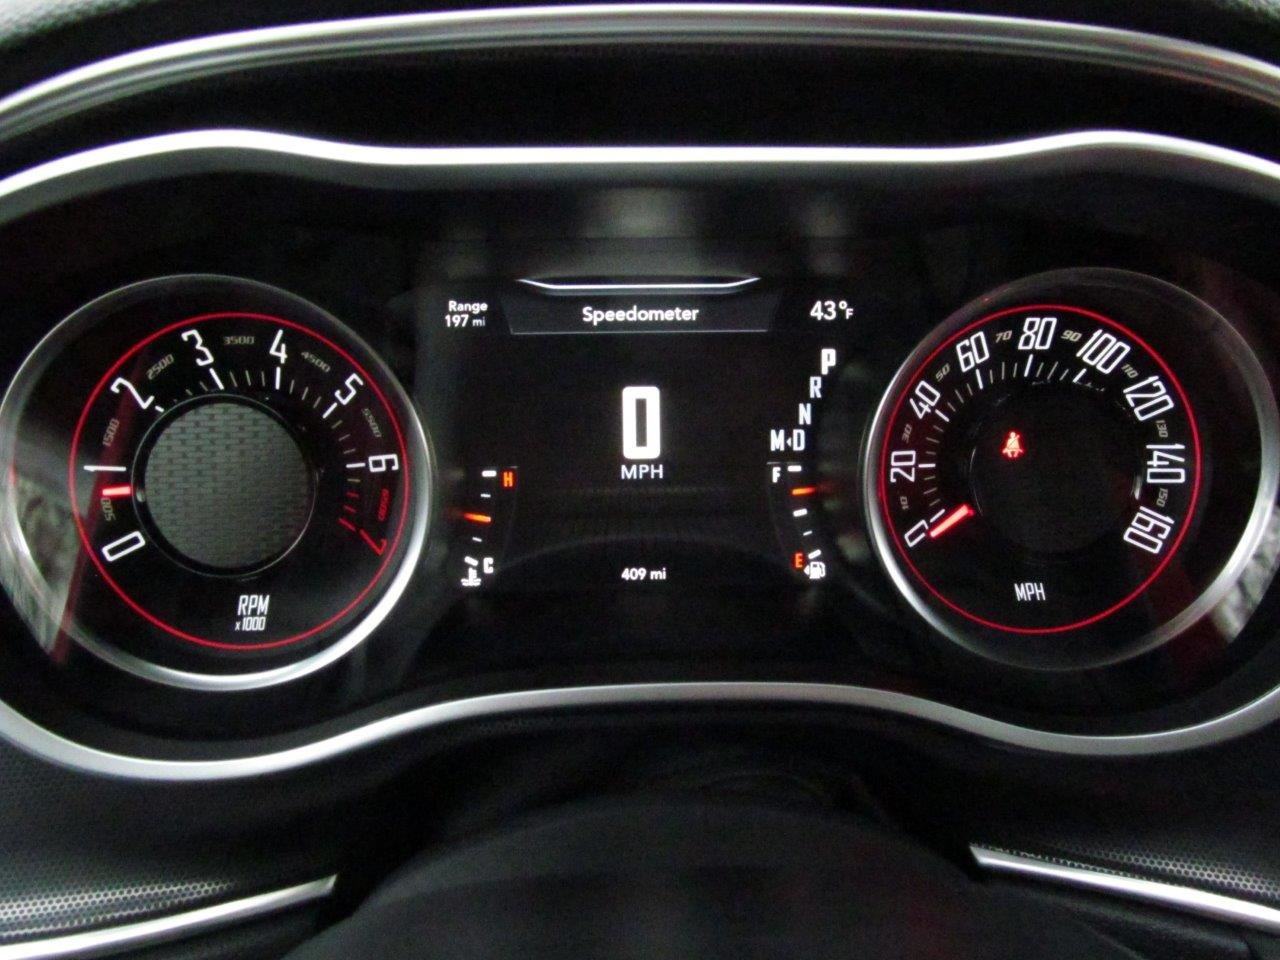 2020 Dodge Challenger SXT Plus RWD 8-Speed Automatic LHD For Sale (picture 10 of 12)